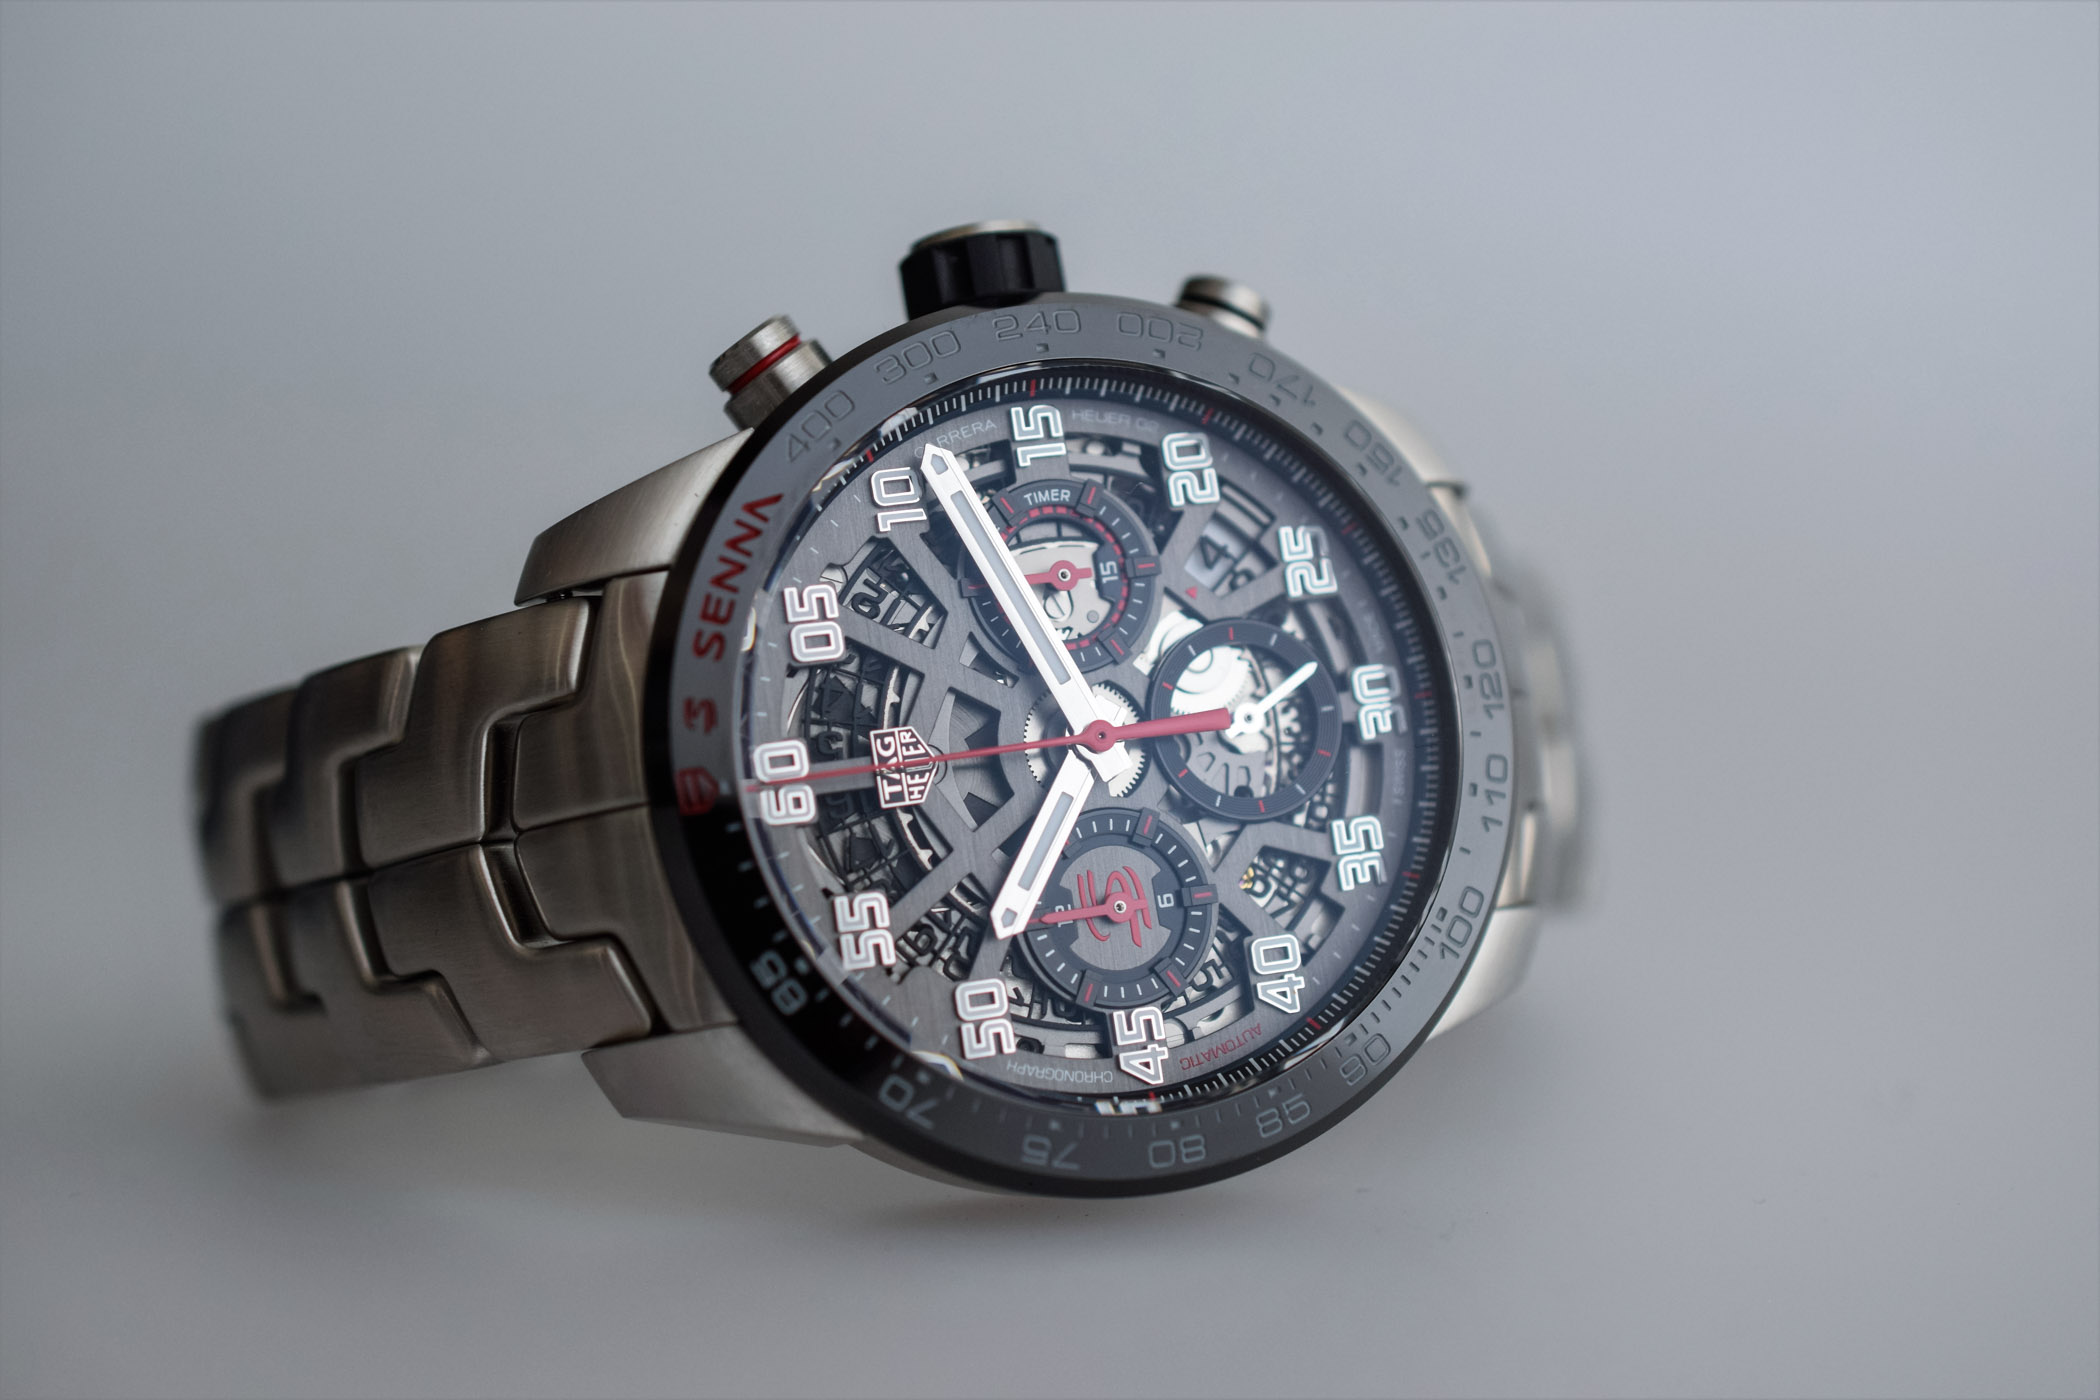 TAG Heuer Carrera Senna Editions with very cool Link bracelet